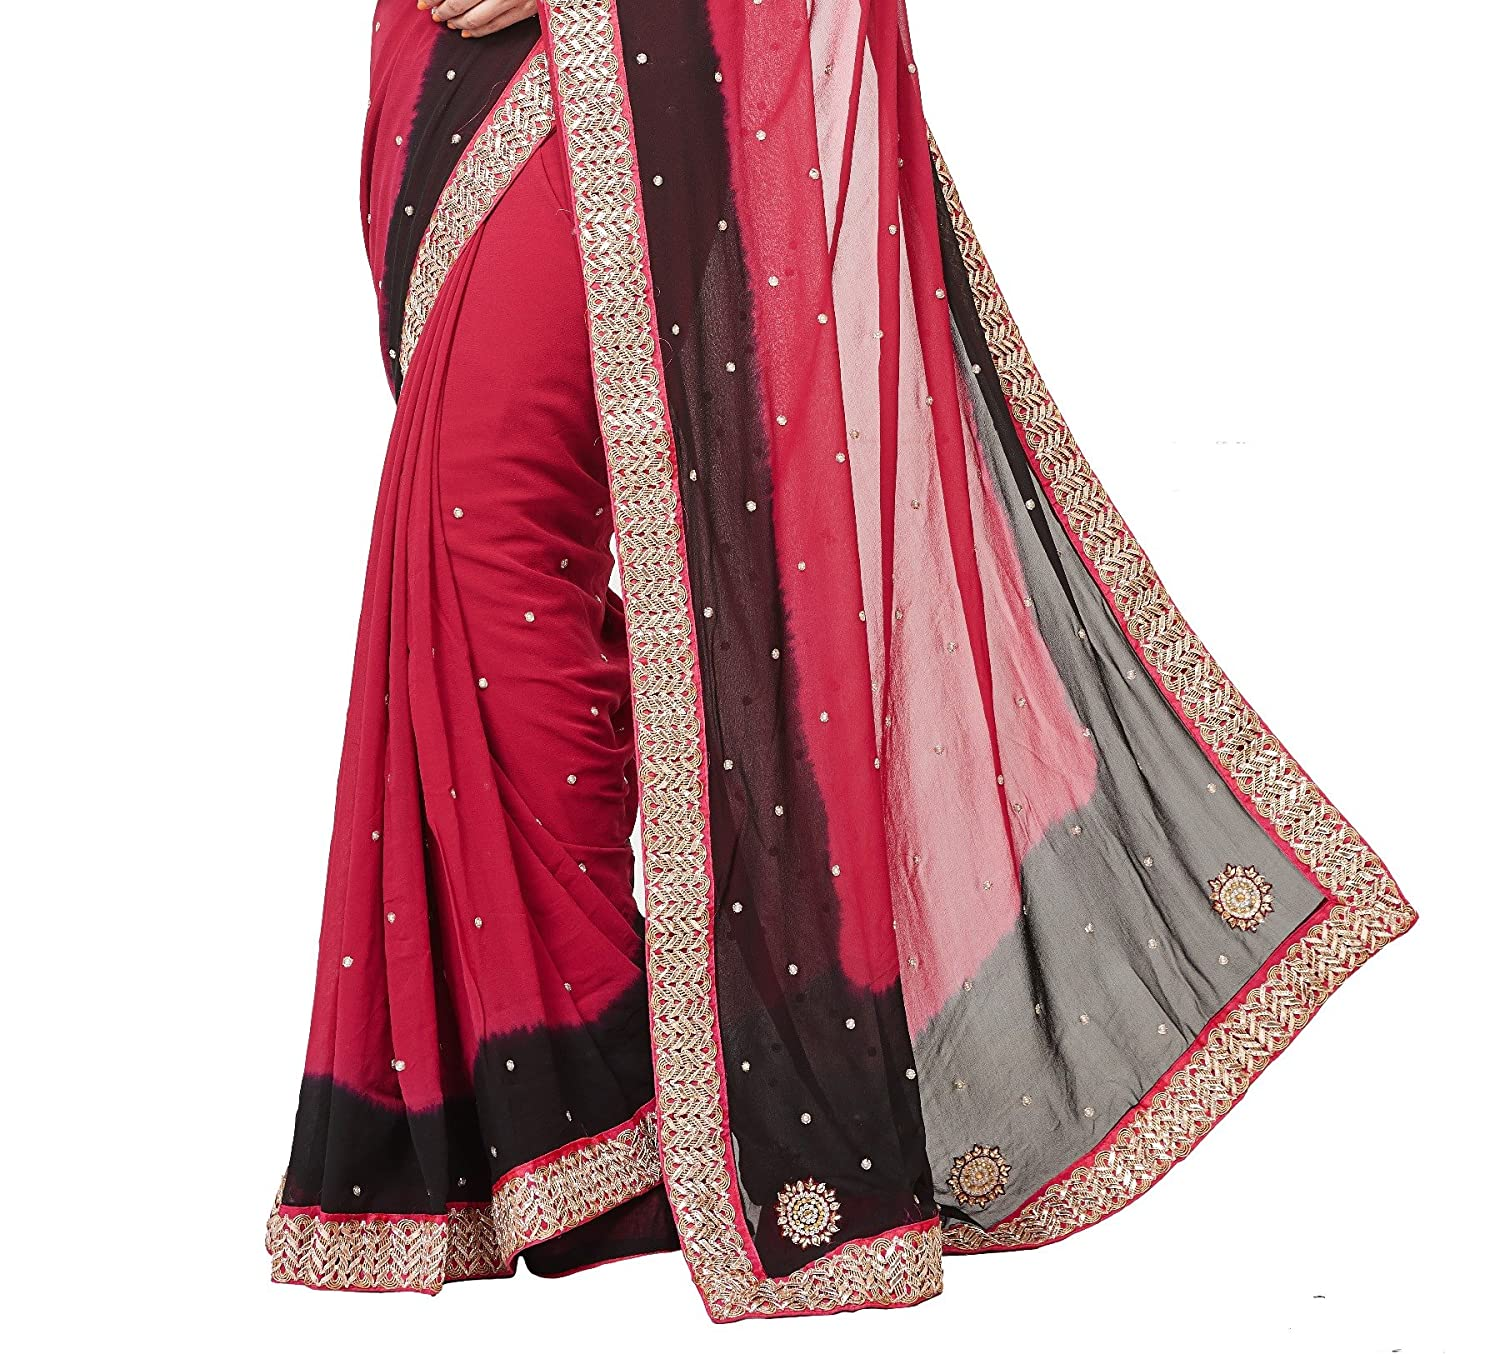 efa5a0b3109 RB Sarees 100% Pure Georgette (70 gram quality) Hand Embroidery Cherry Red    Black Coloured Saree with Pearl Work  Amazon.in  Clothing   Accessories